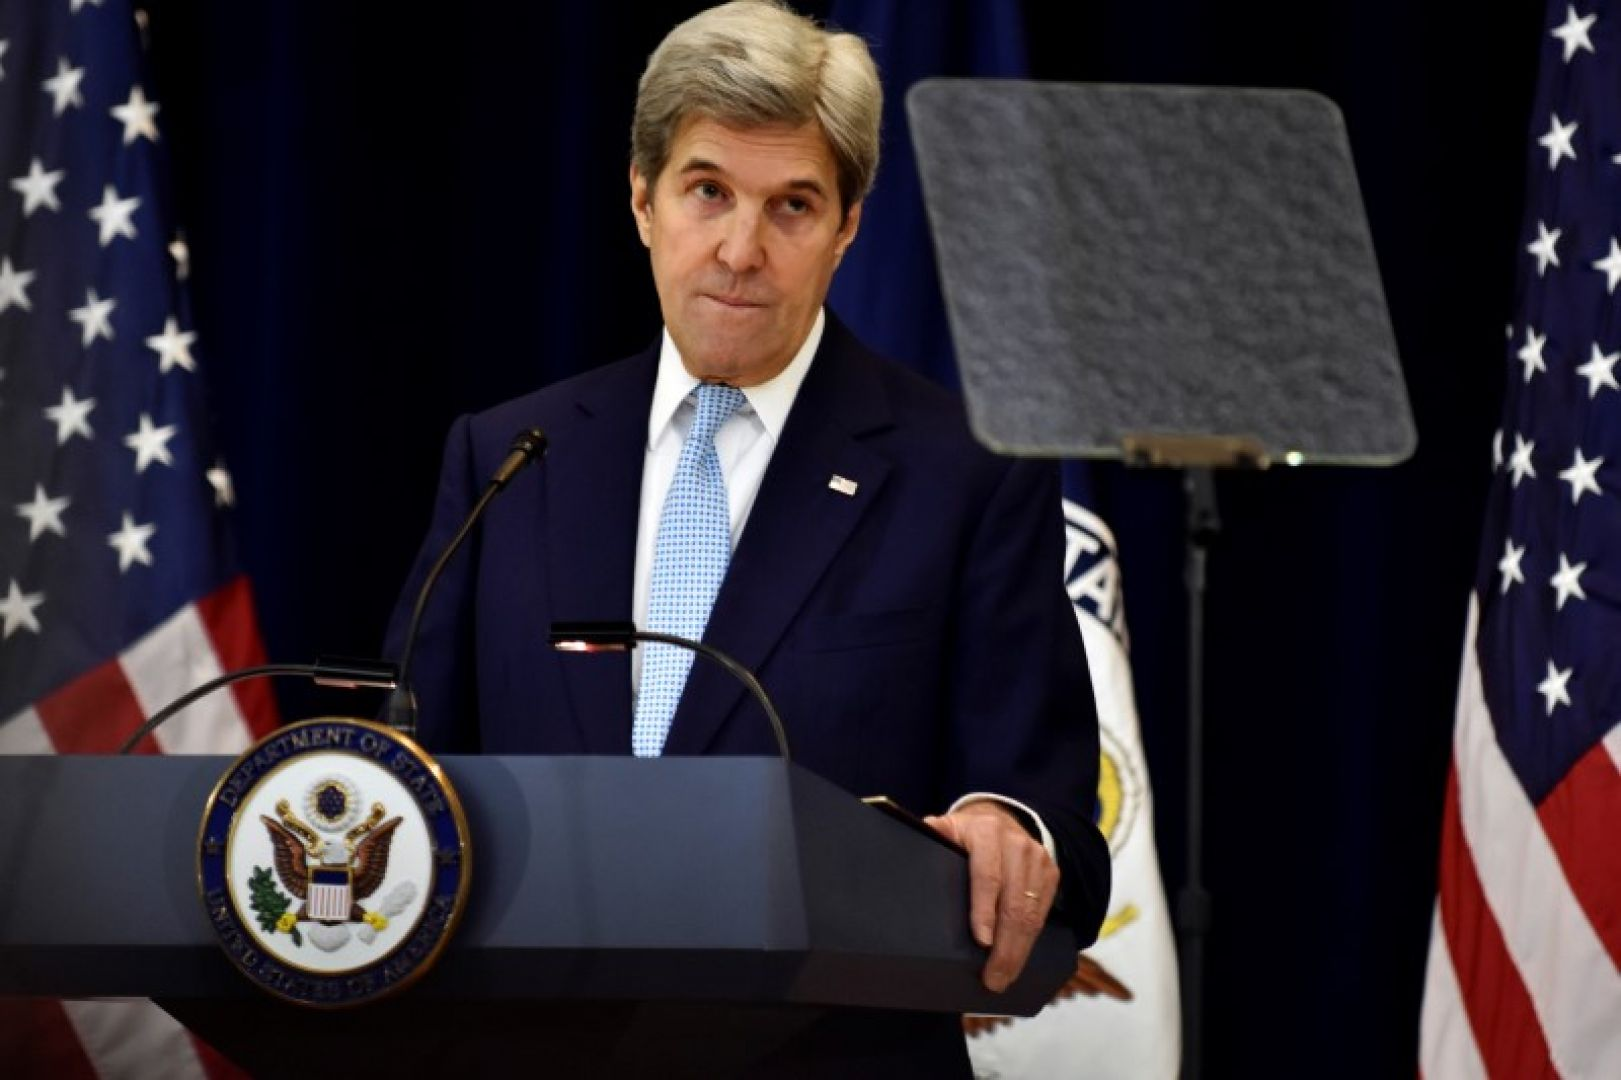 Flaws at the Heart of Kerry's Blueprint - U.S. Secretary of State John Kerry delivers remarks on Middle East peace at the Department of State in Washington. Photo: Reuters